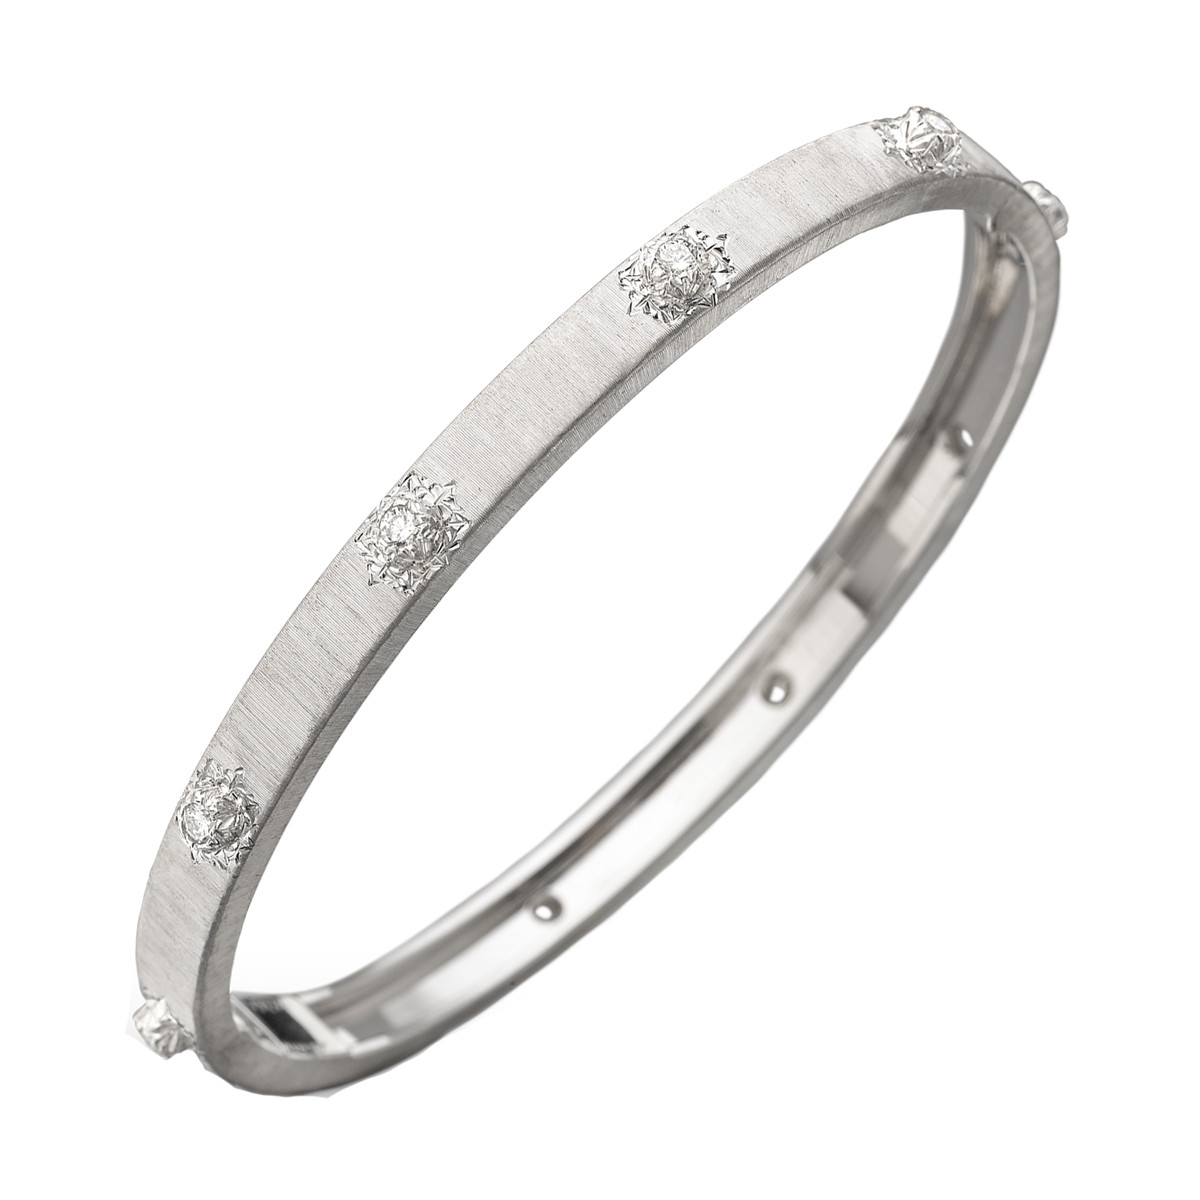 "18k White Gold & Diamond ""Macri"" Bangle"